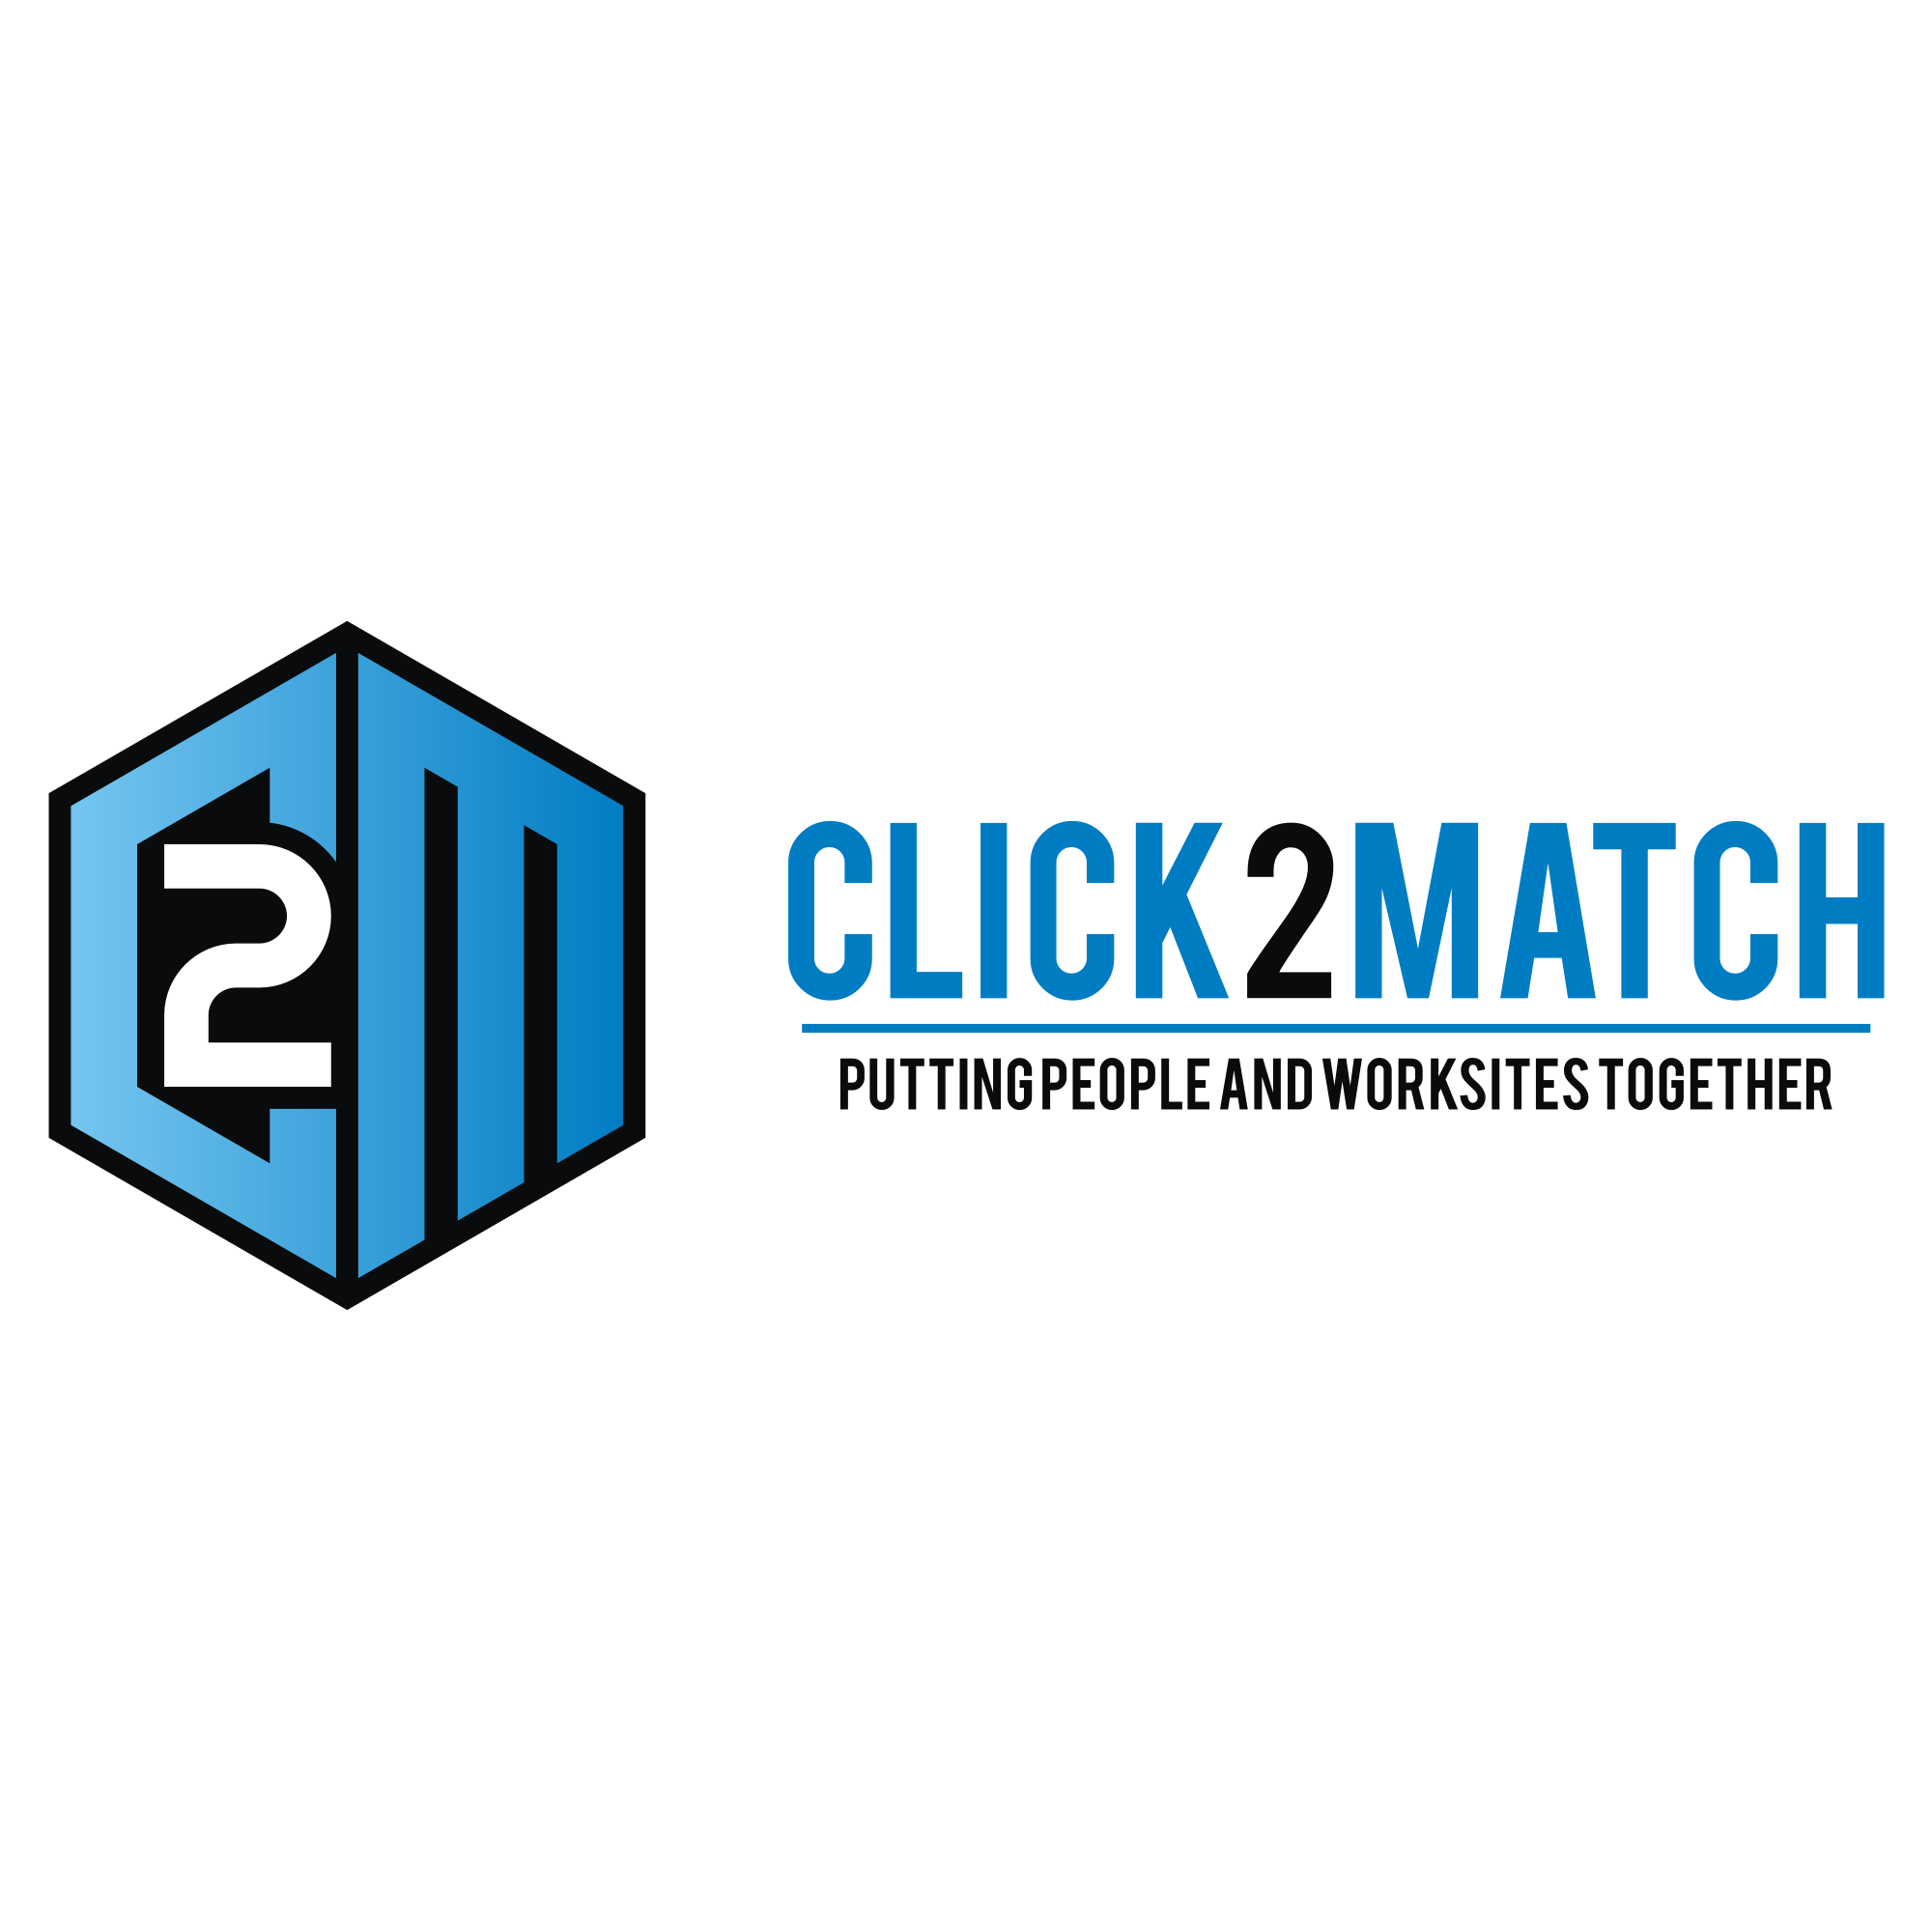 Click2Match a referral business for workers; putting people and worksites together